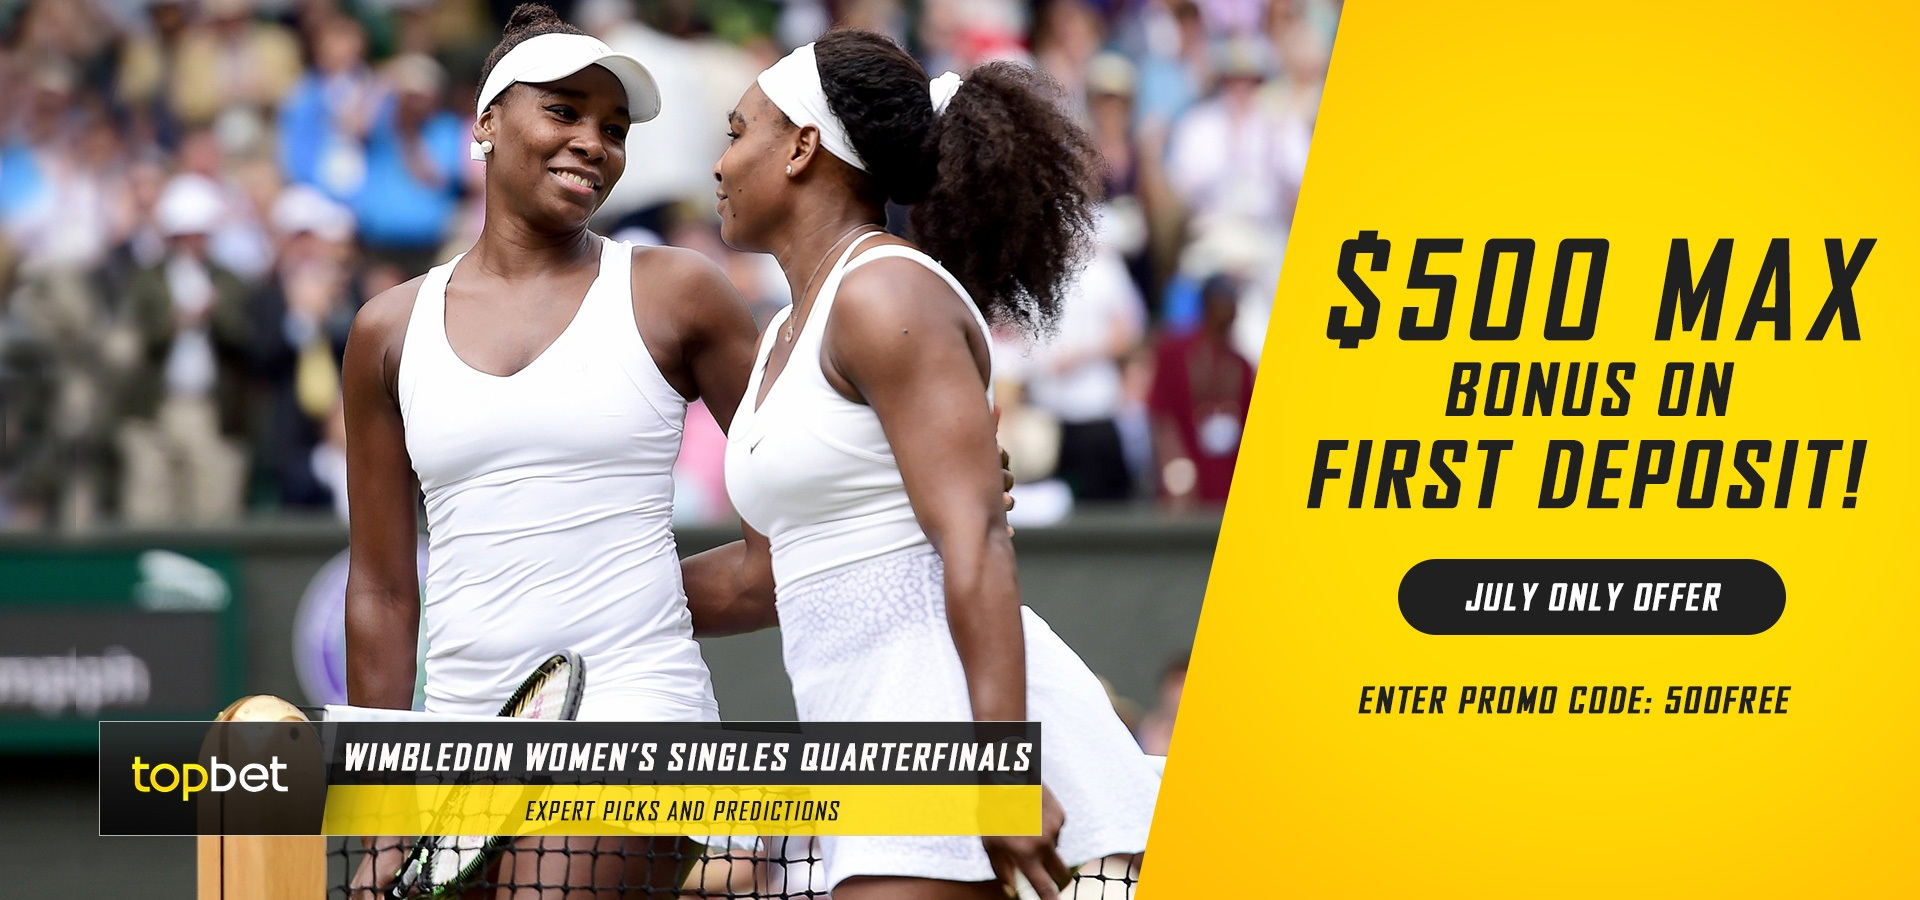 wimbledon single personals Just one of the top 10 seed remained in the main draw at wimbledon this year in the women's singles draw relive the ten biggest upsets in the open era in the tournament's history.